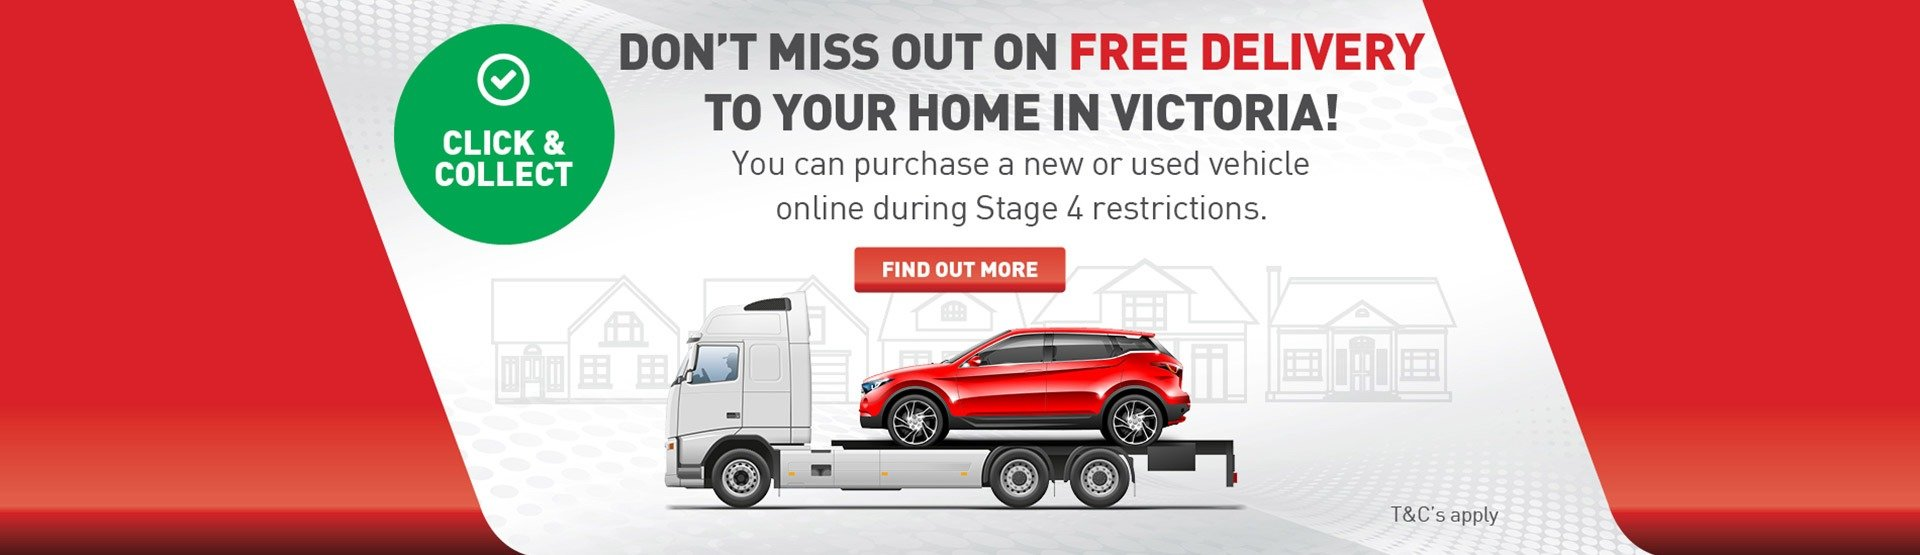 Werribee Nissan - Free Delivery on Car Purchase